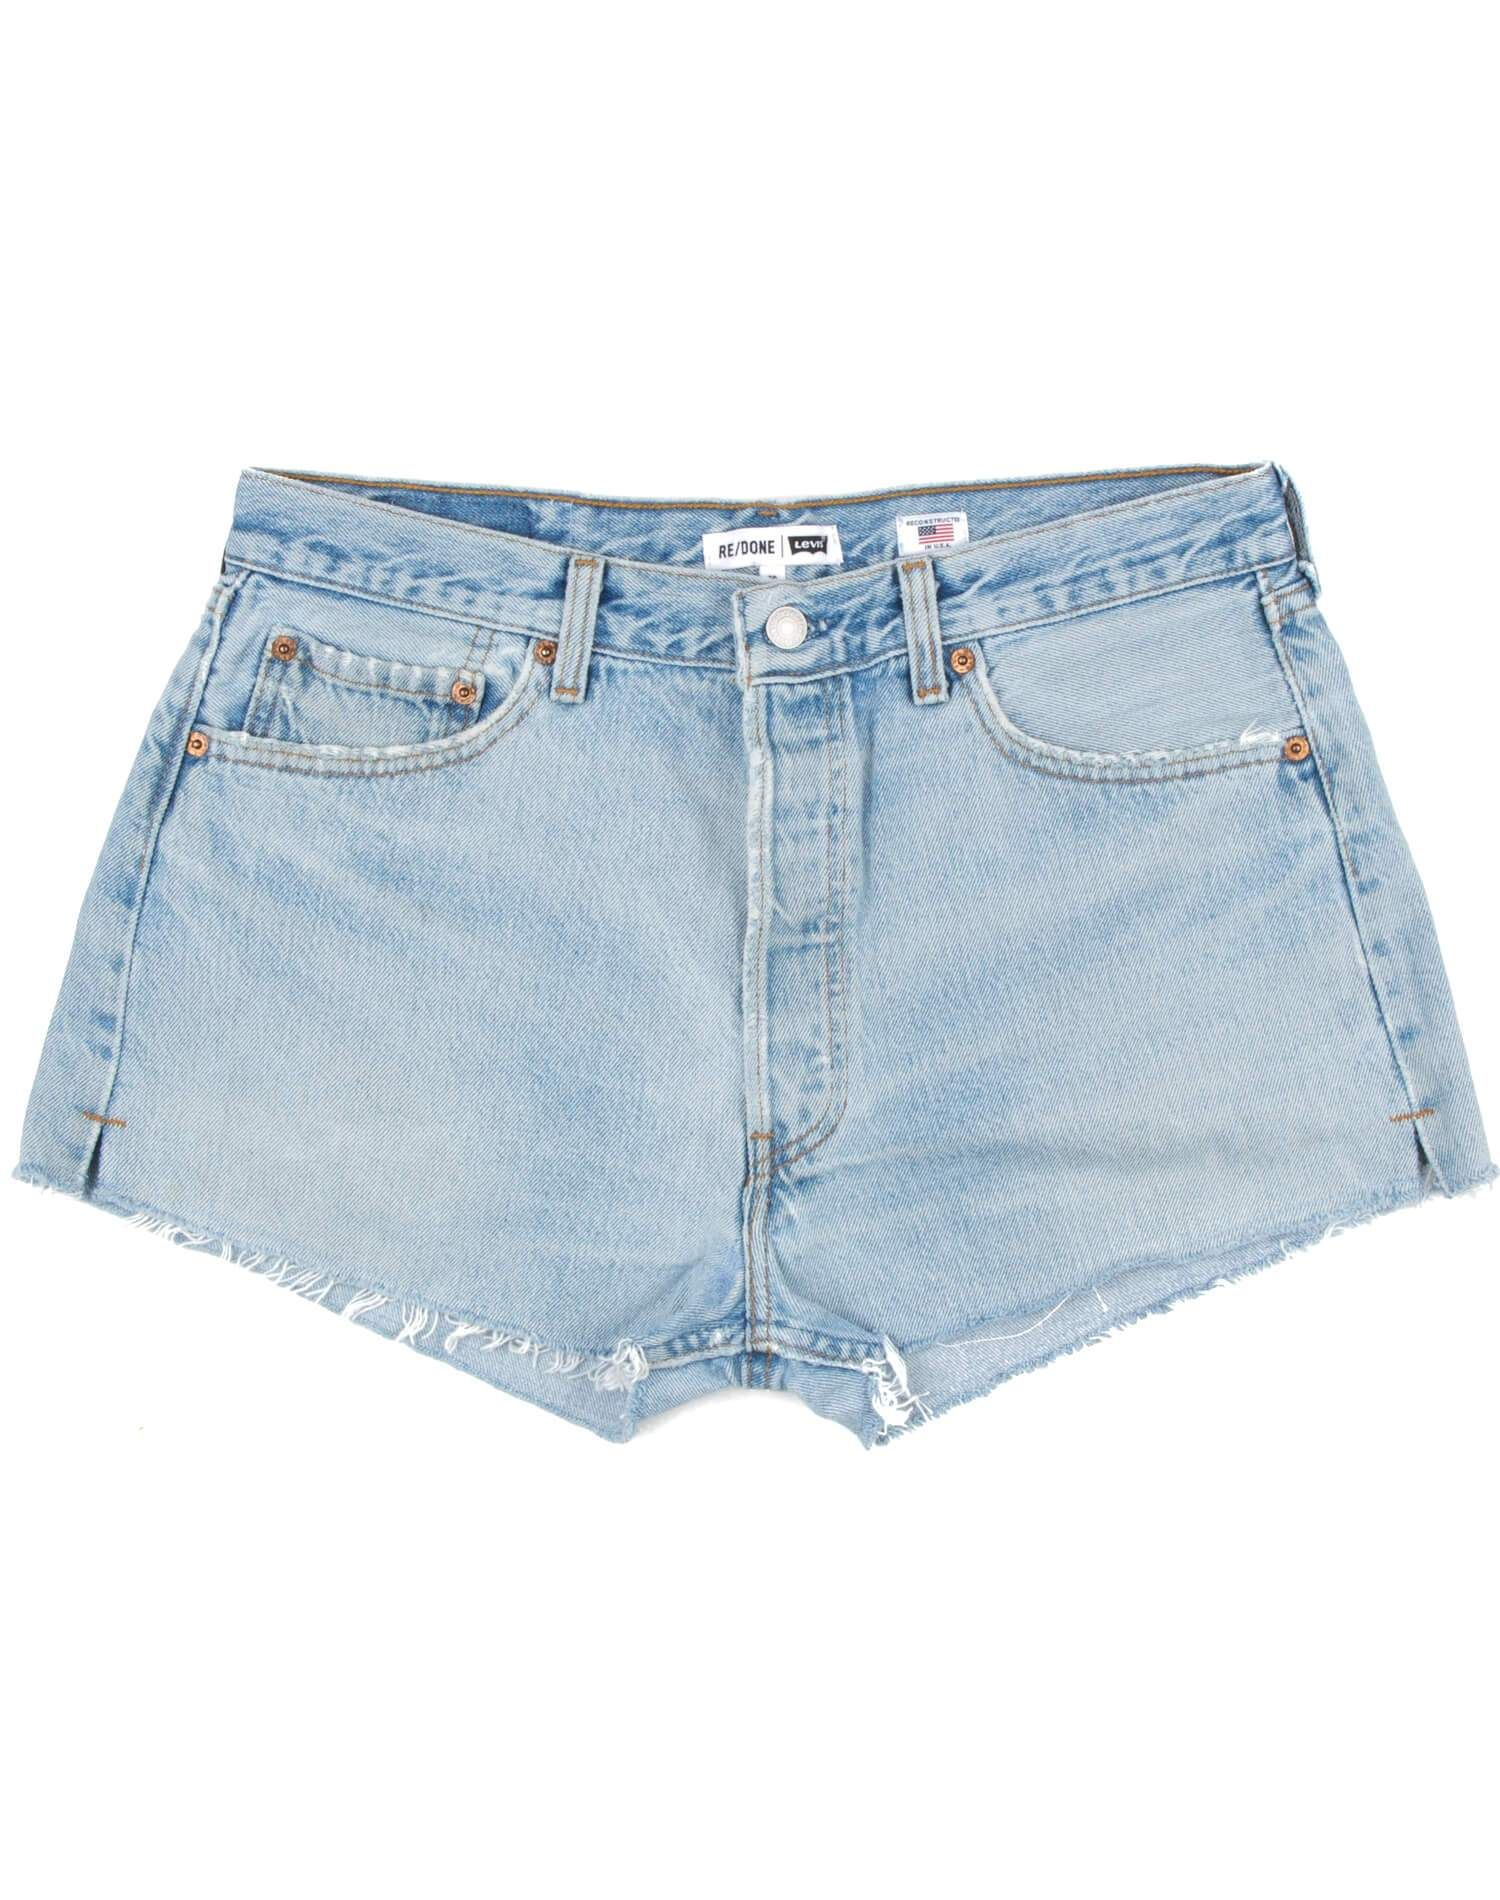 Vintage Levi's | The Shorts | Light Blue | Size 28 | No. 28TS1175394 | Denim #lightblueshorts